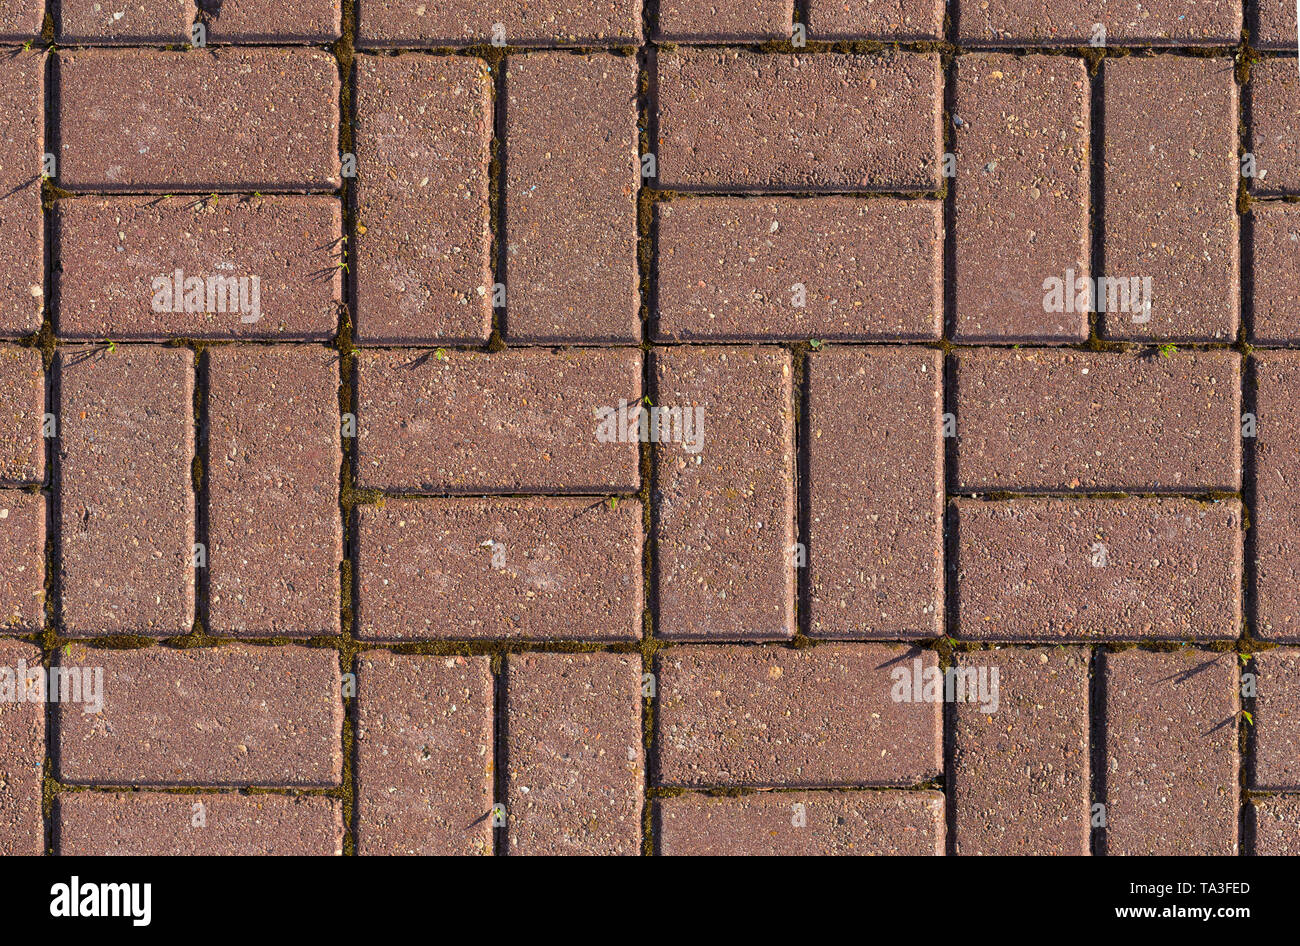 Red bricks floor texture with moss - Stock Image